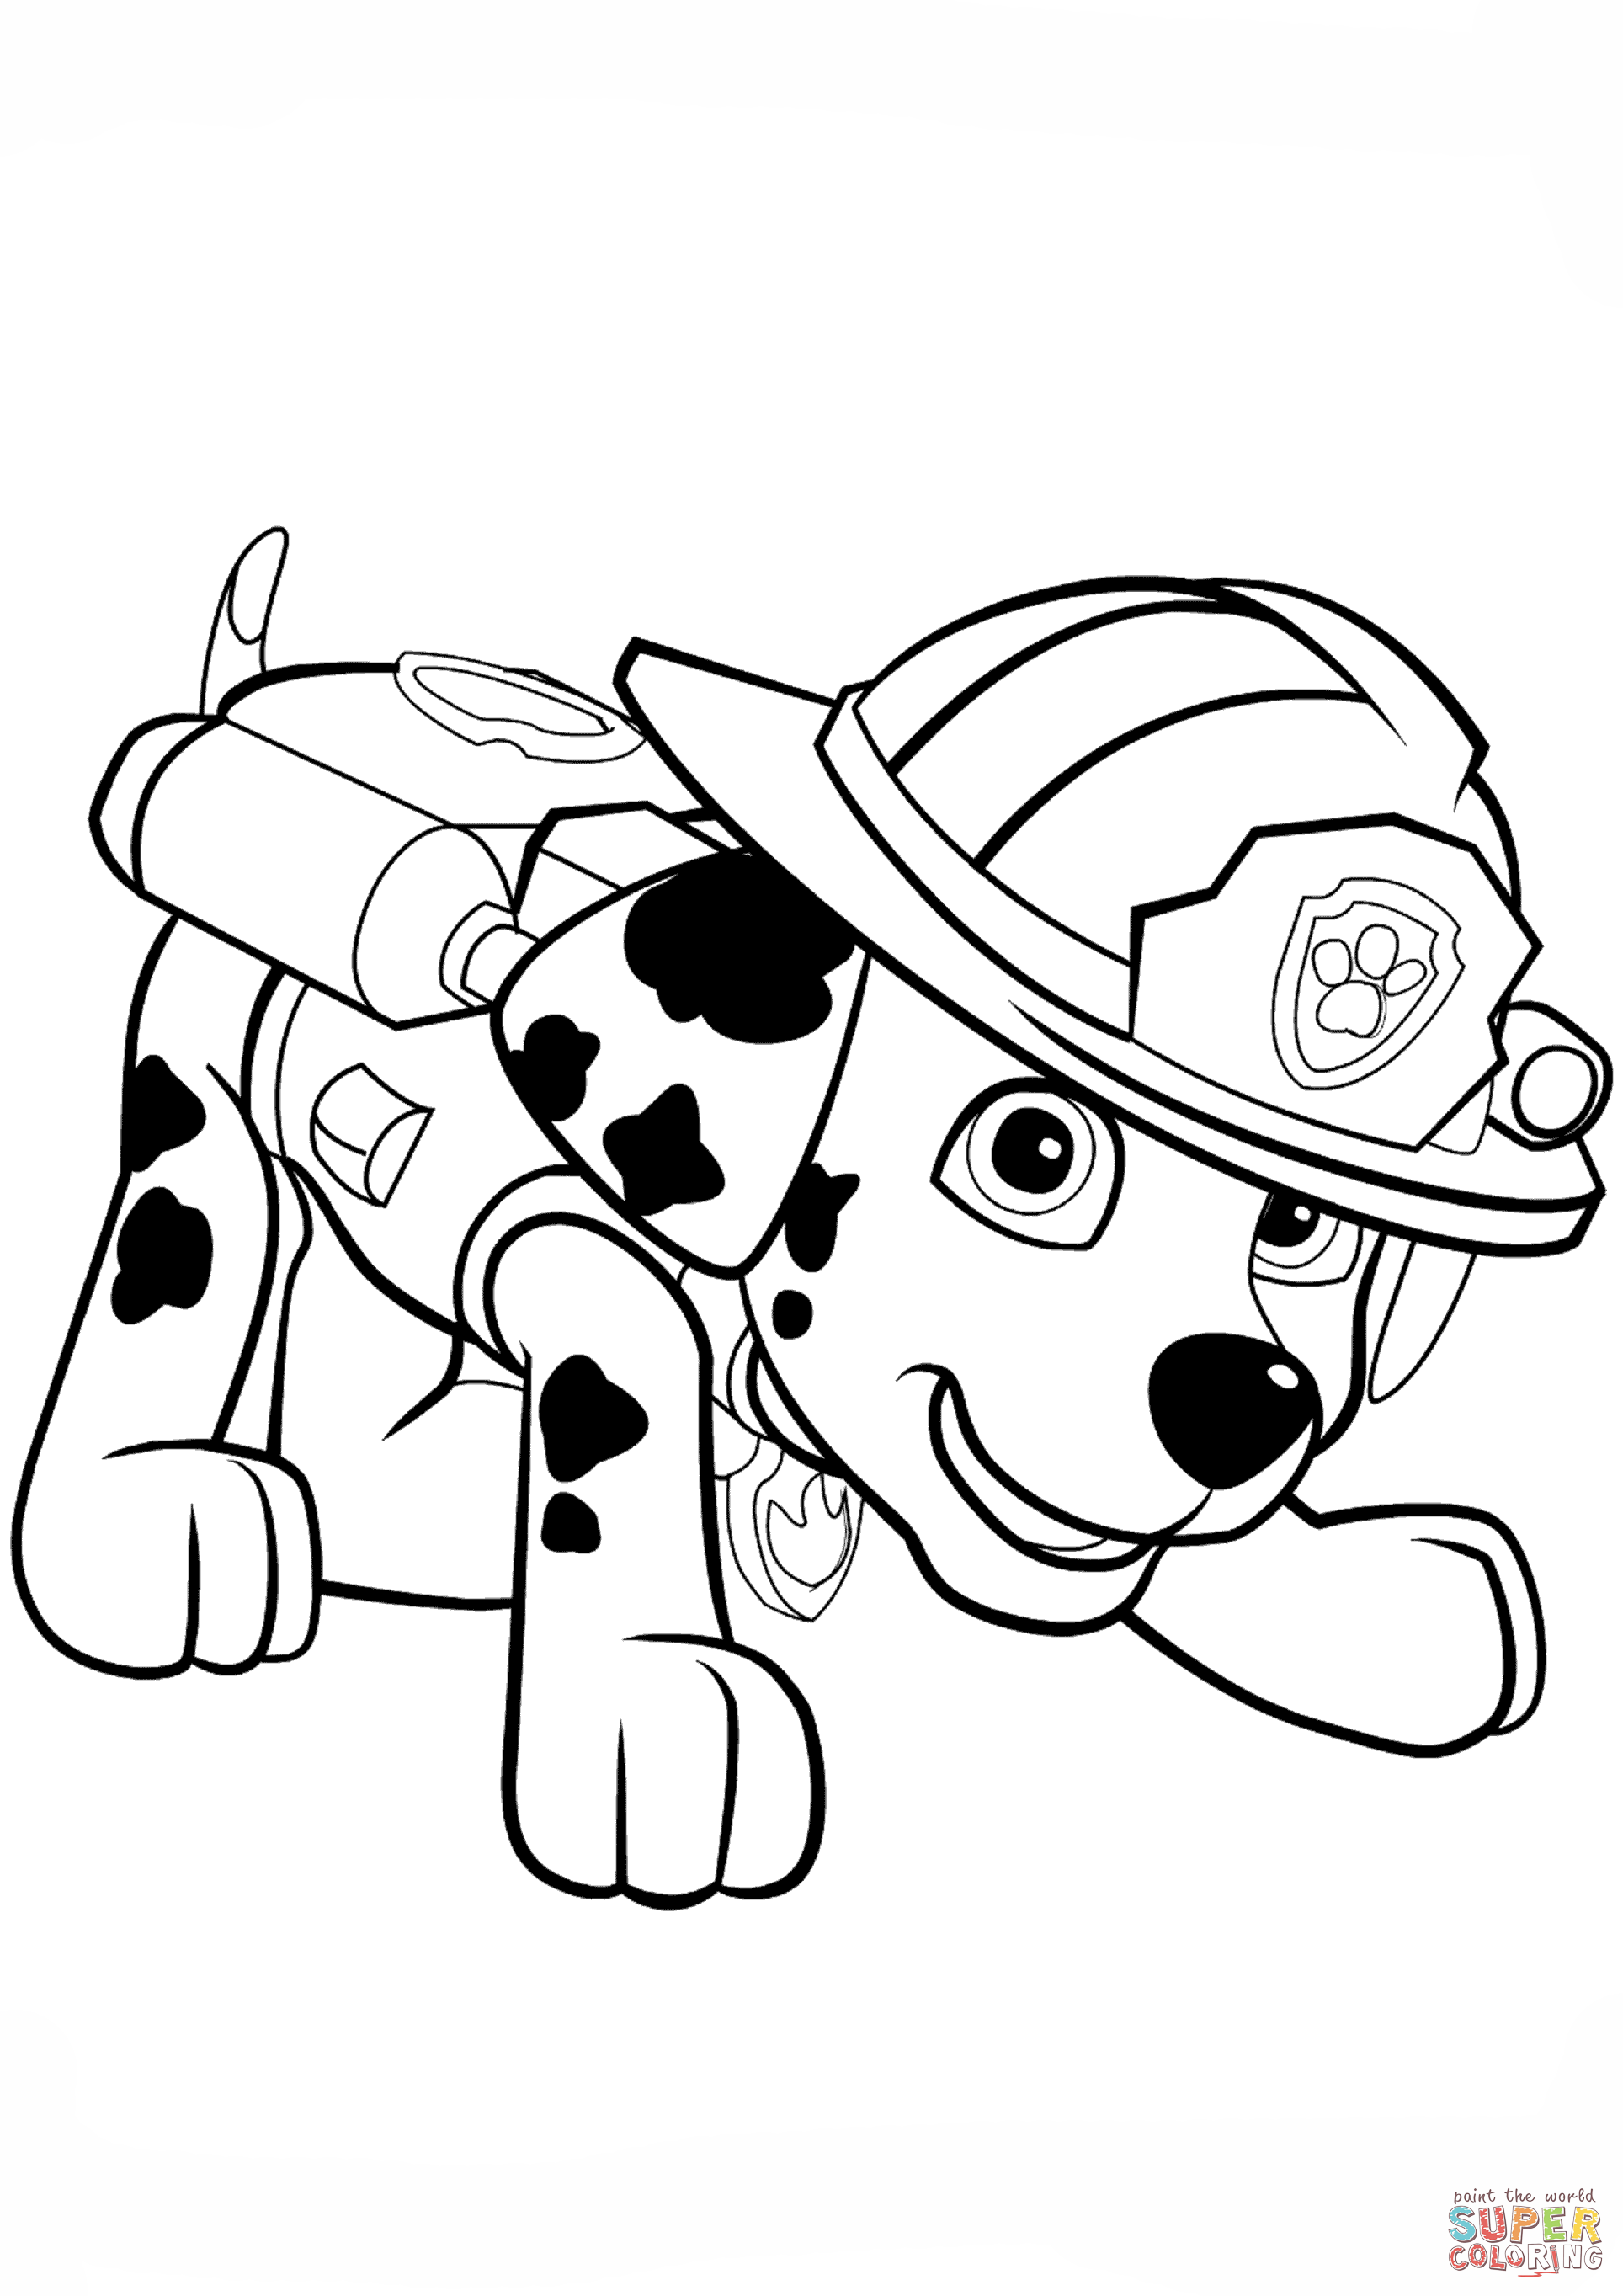 Paw Patrol Truck Coloring Pages : Paw patrol coloring pages marshall and firetruck